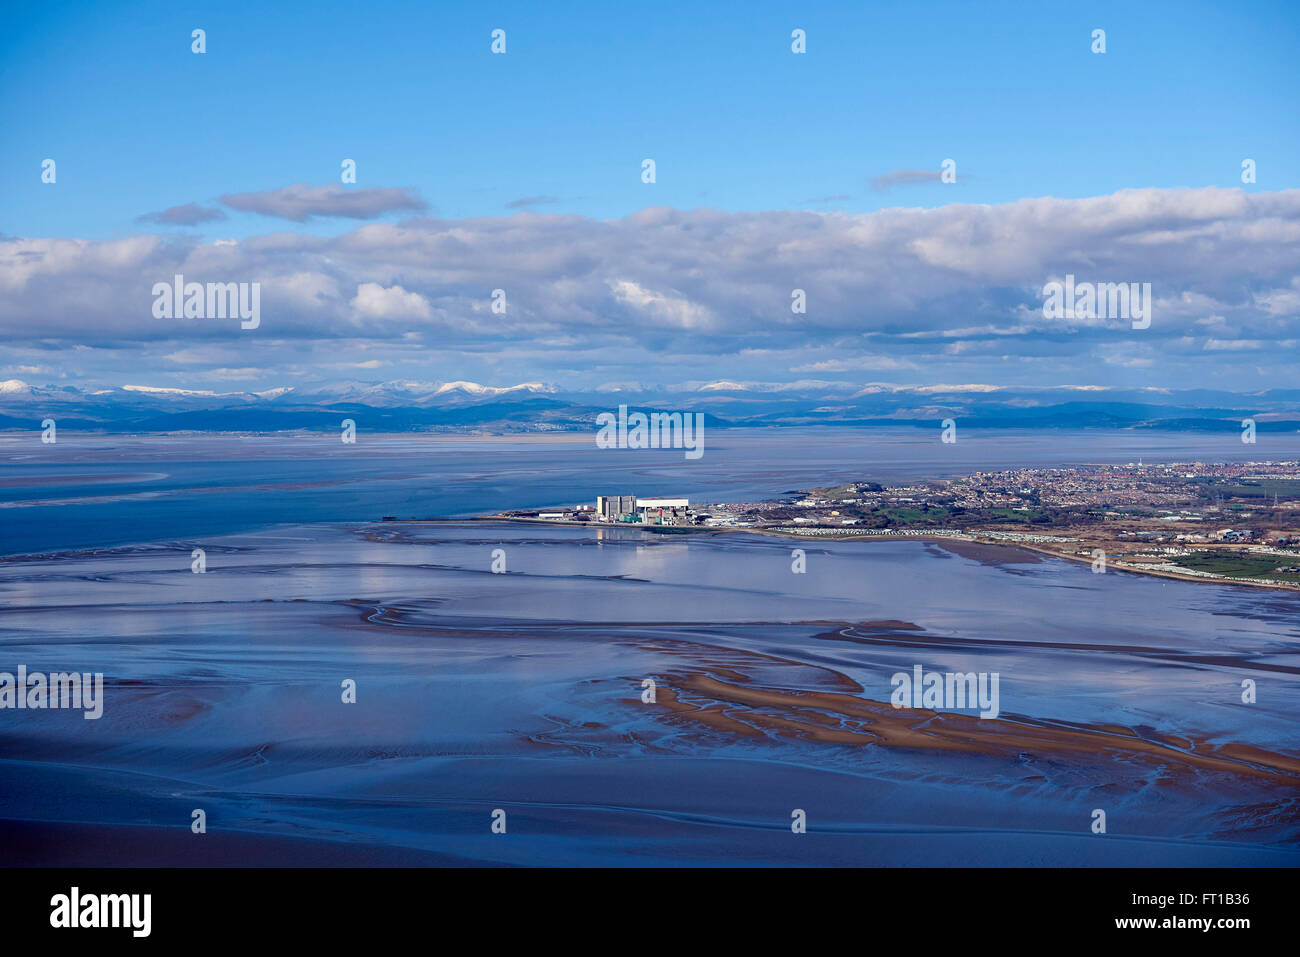 Heysham Nuclear Power Station, with Morecambe Bay and the Lake District behind, NW England, UK - Stock Image